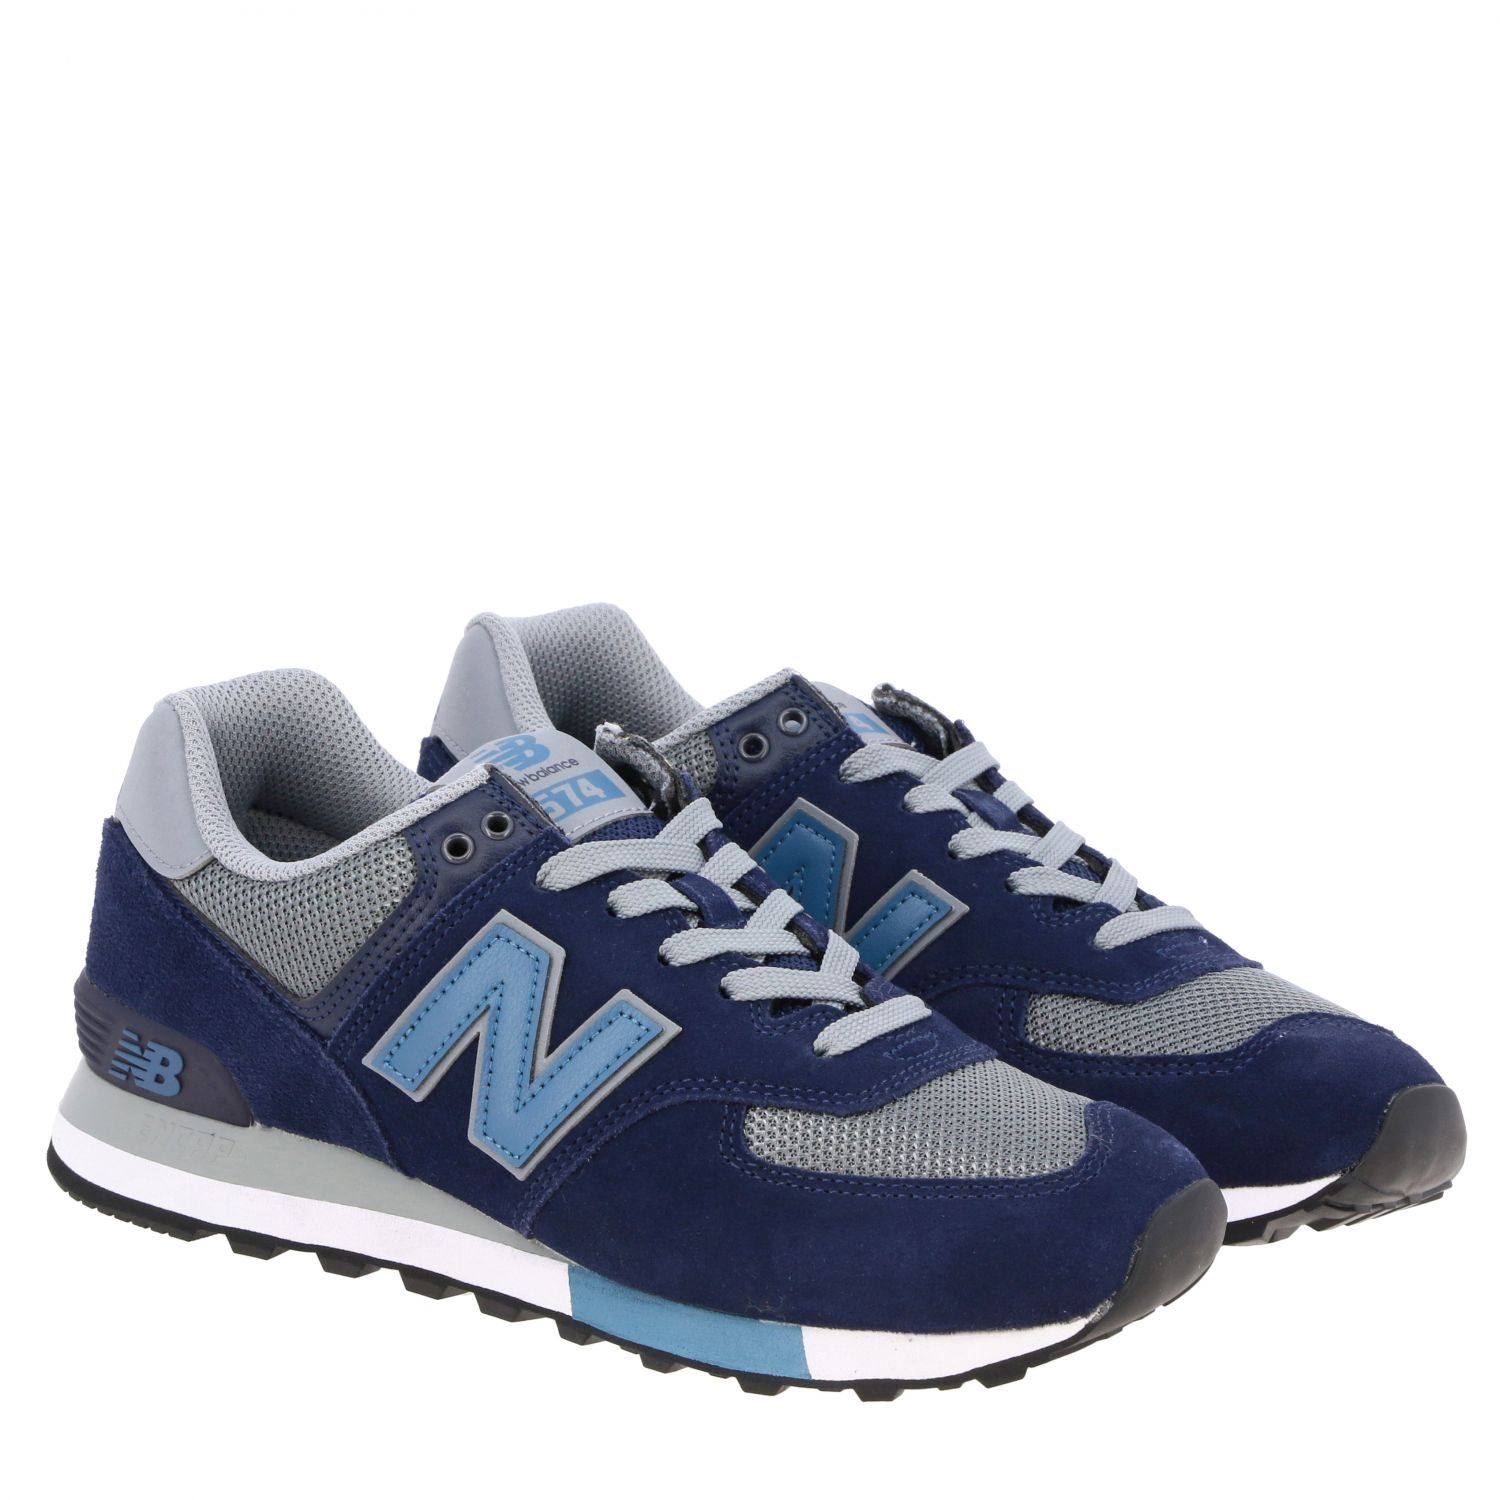 Baskets 574 New Balance en daim et filet contrastés bleu 2